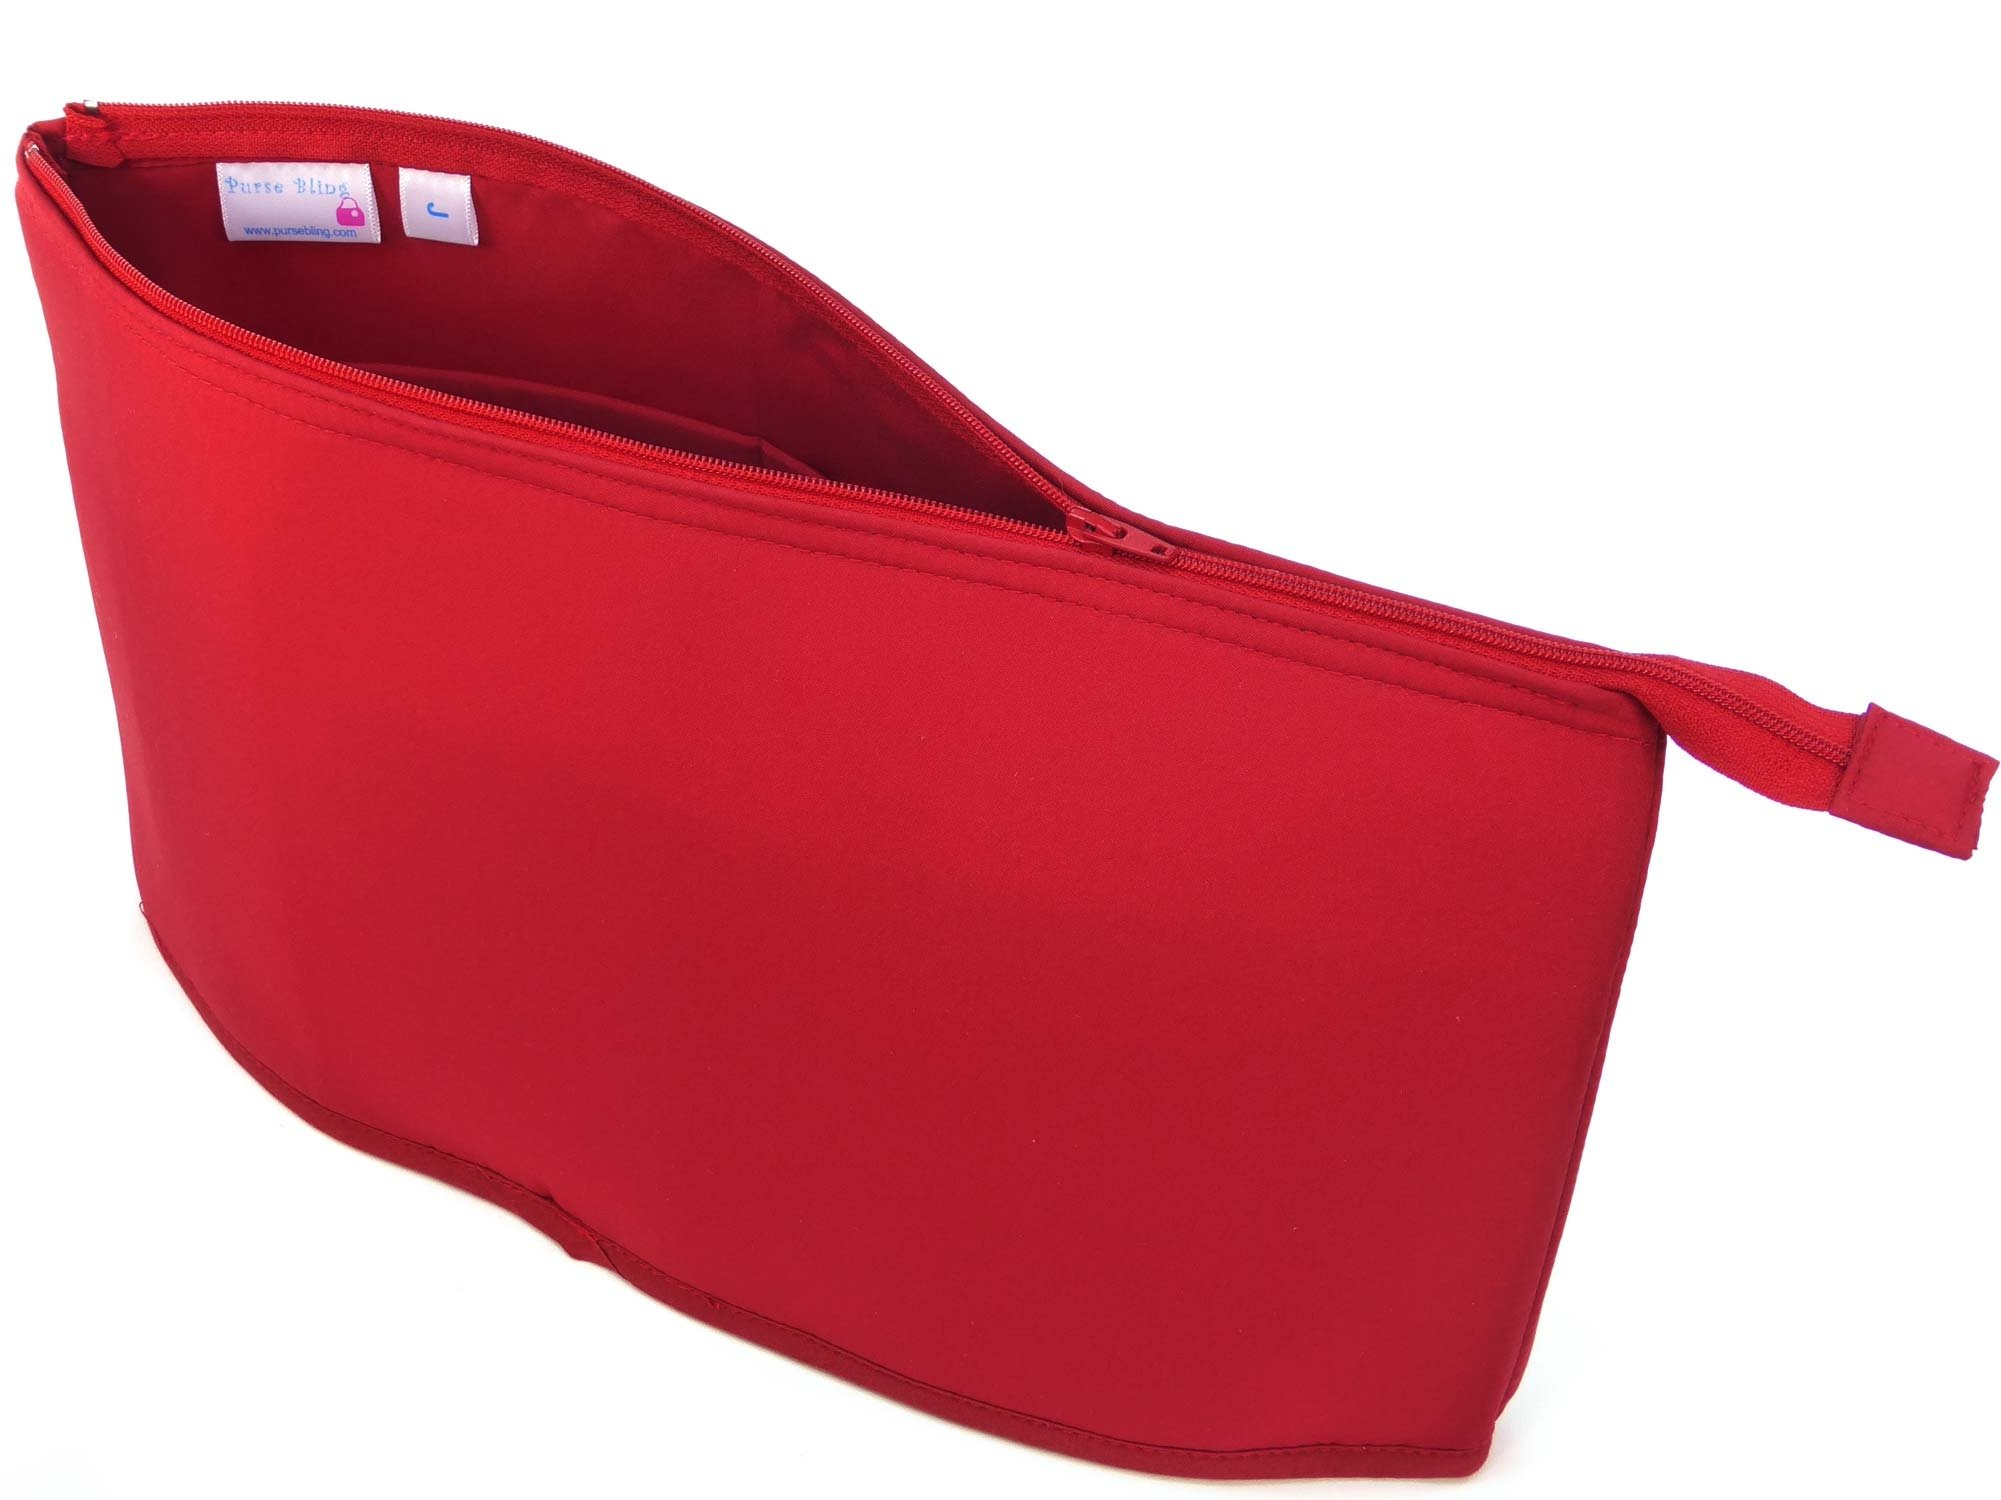 Purse Bling ''Purse To Go'' Style Organizer Insert with Zipper - Extra Jumbo-Red